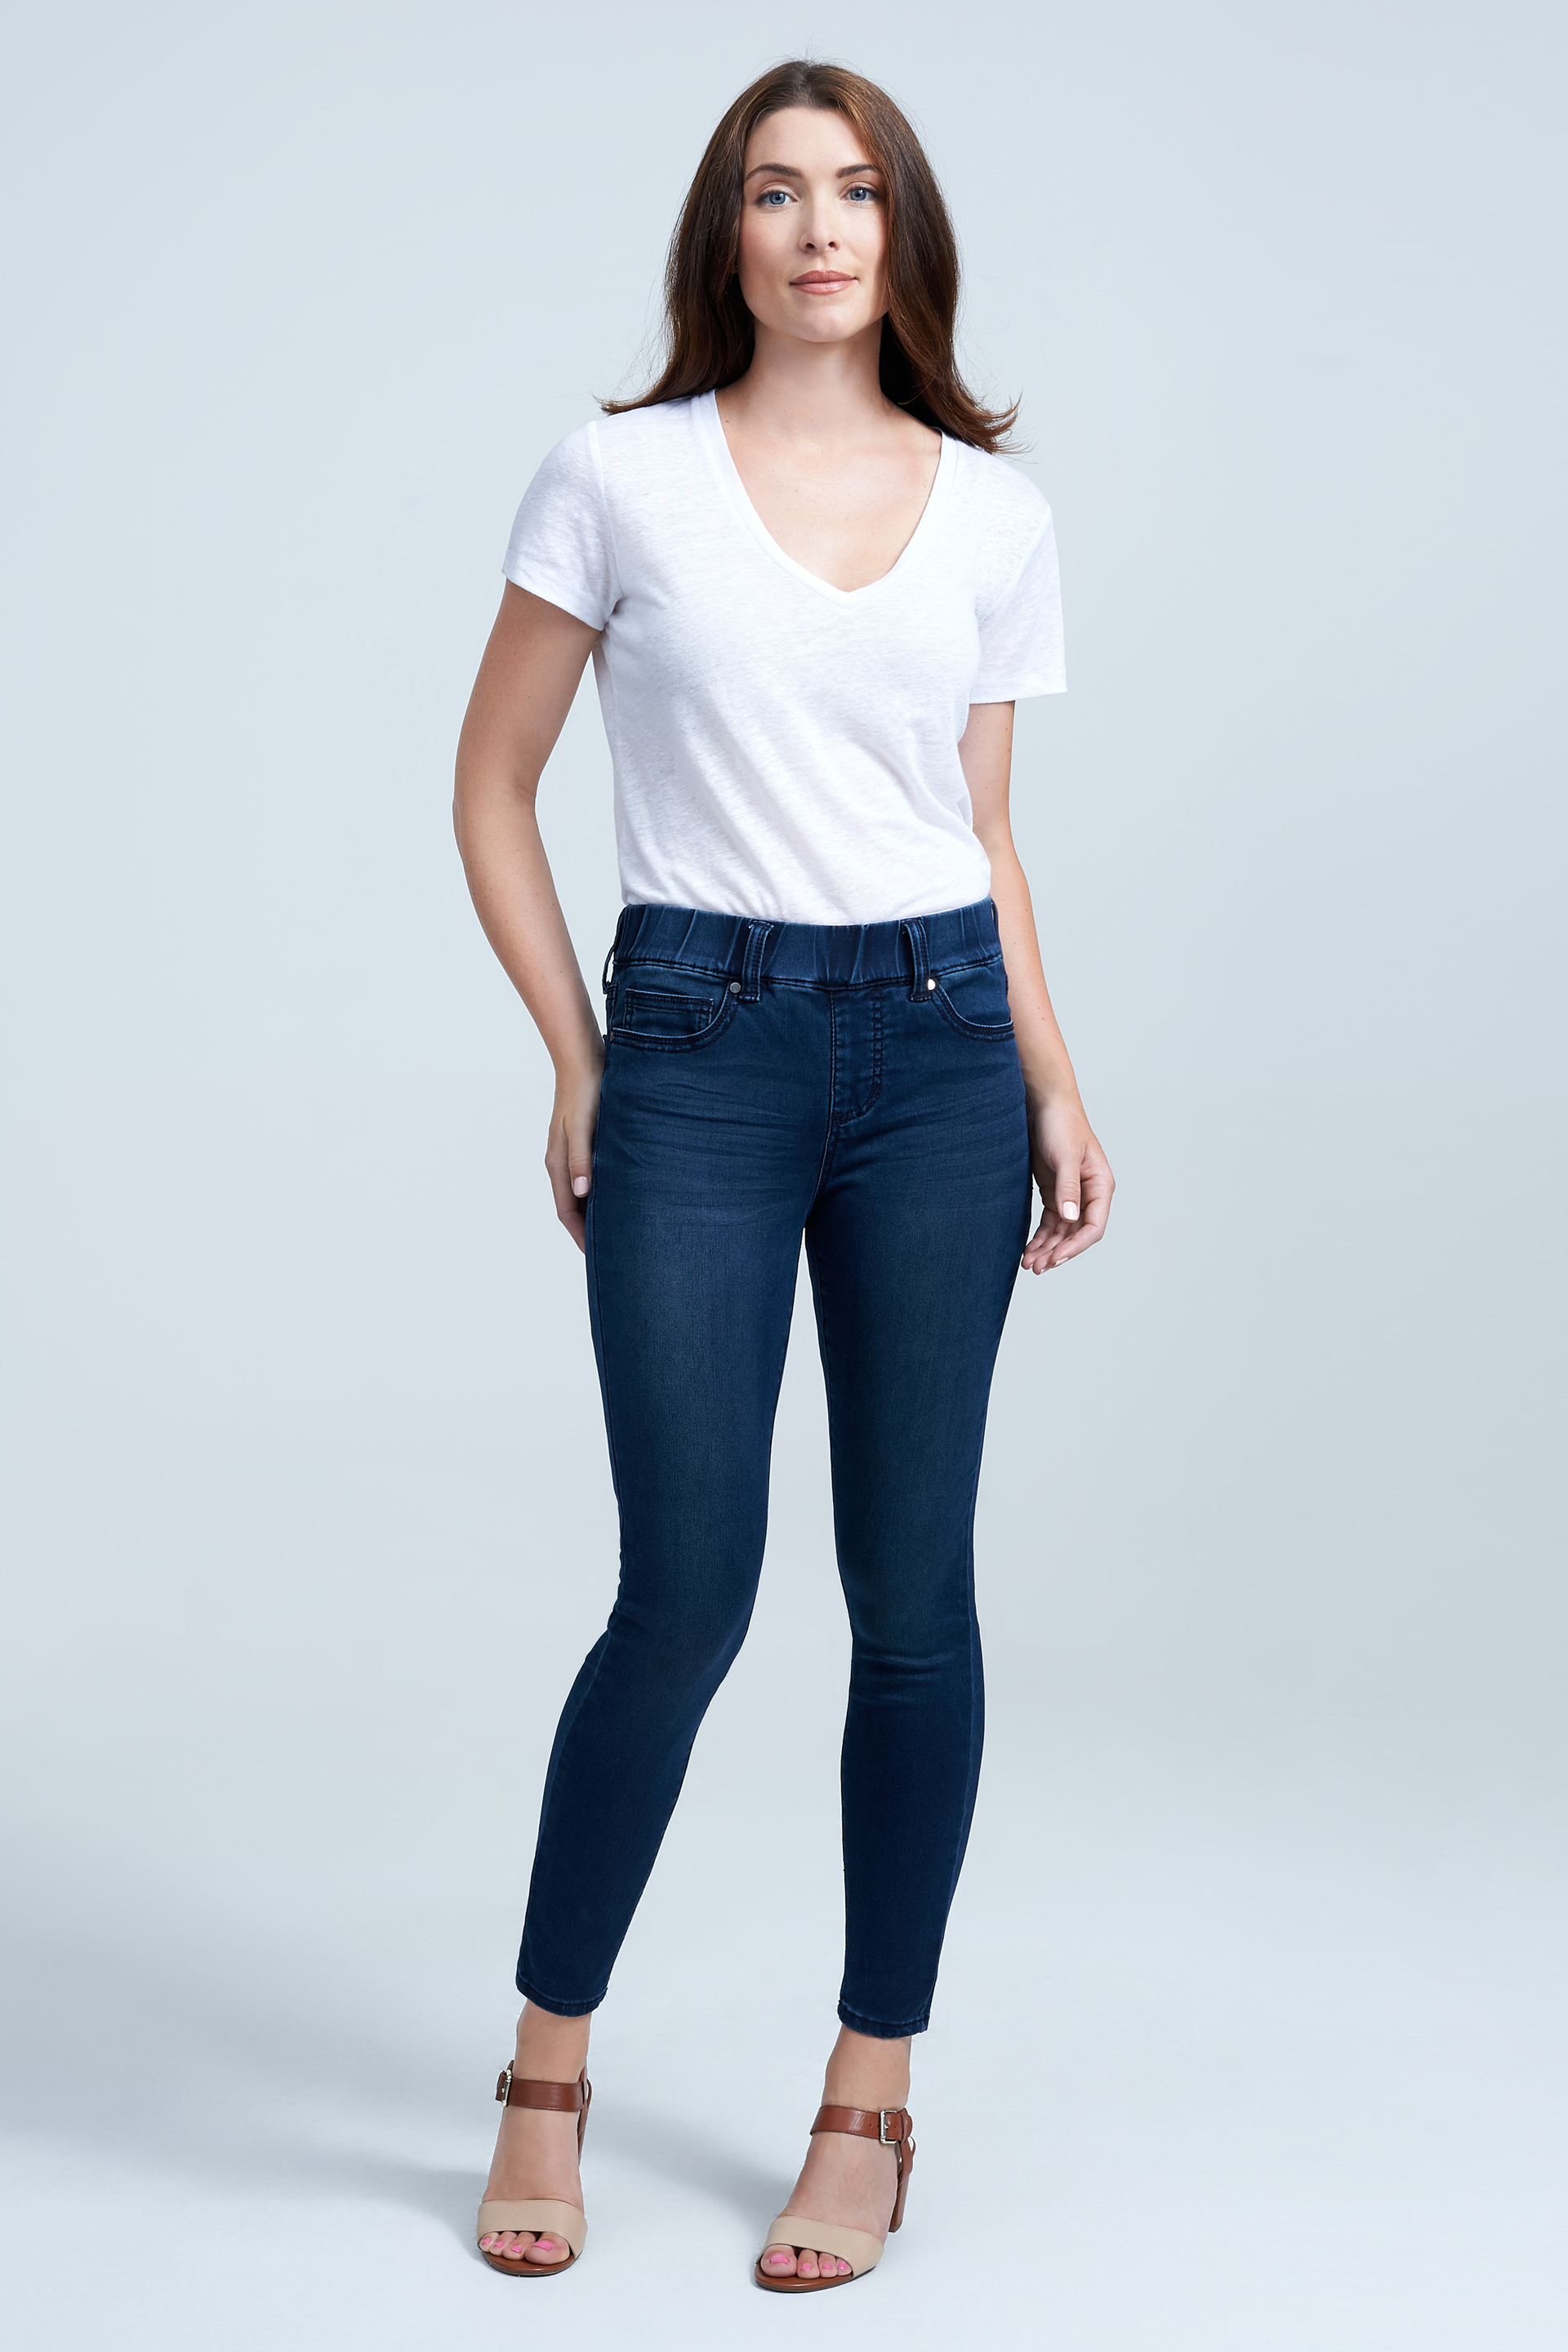 Seven7 Jeans Skin Fit Tummyless Pull On Jean <p>A cinched elastic waistband and stretch-blend denim make it a breeze to slip into this skinny pull-on jean. Tonal details keep the look simple and chic.</p>